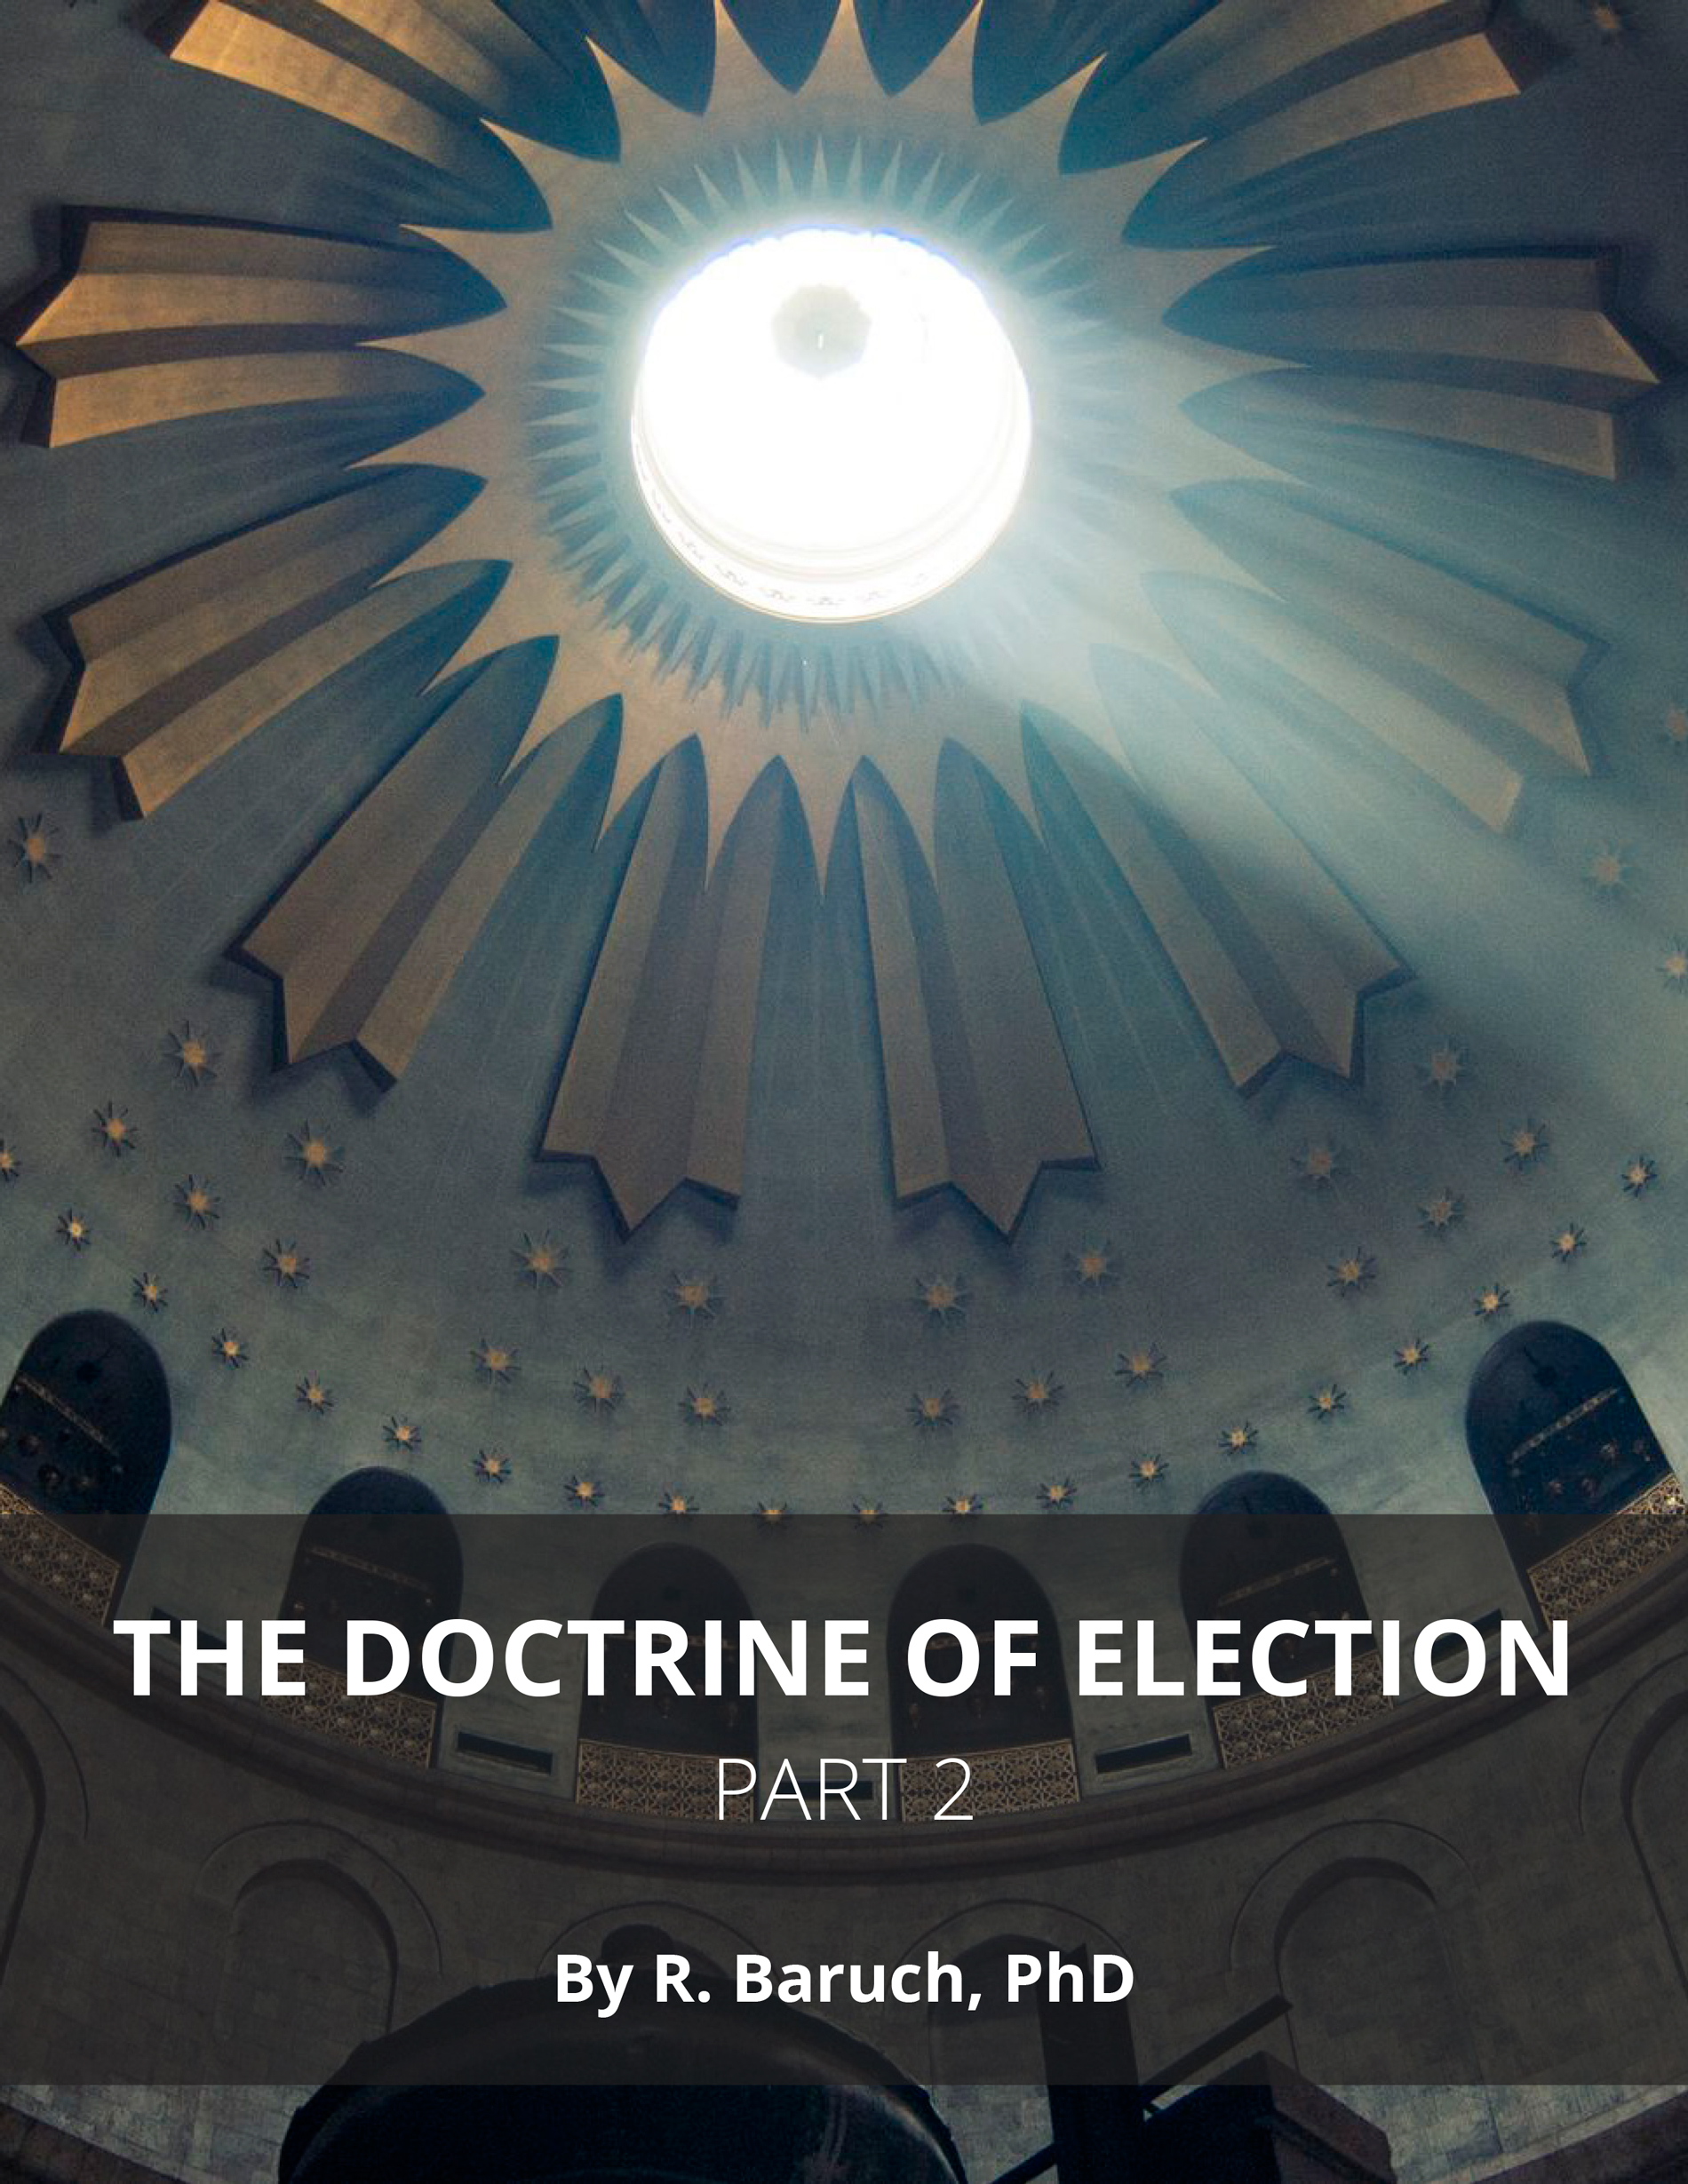 Doctrine of Election Part 2